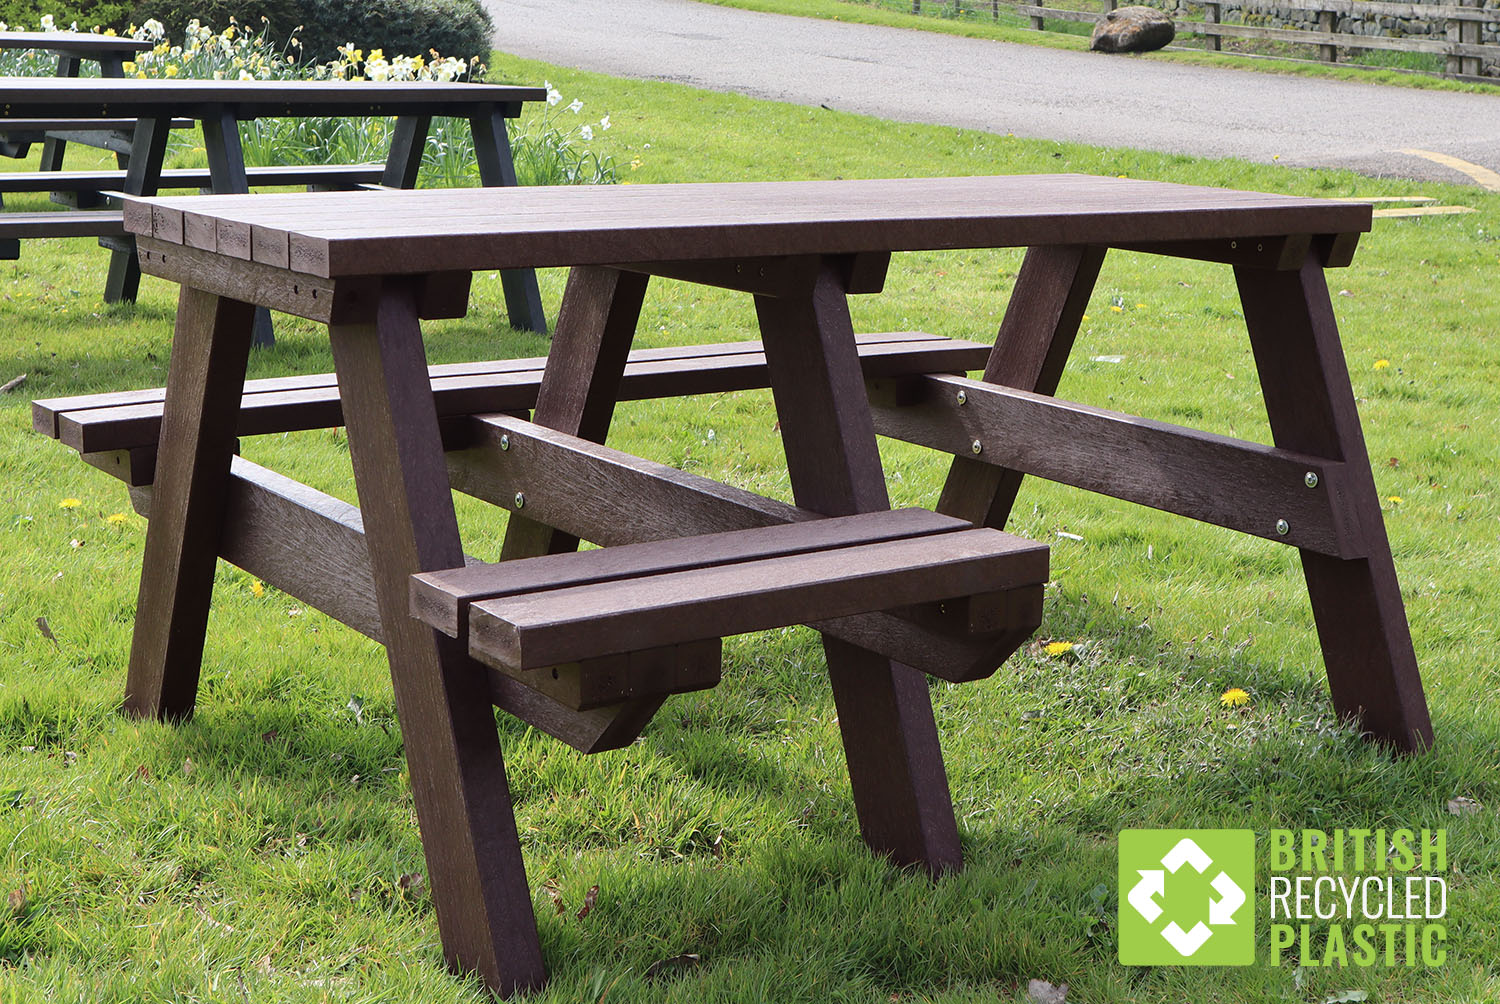 A brown Bradshaw wheelchair accessible recycled plastic picnic table